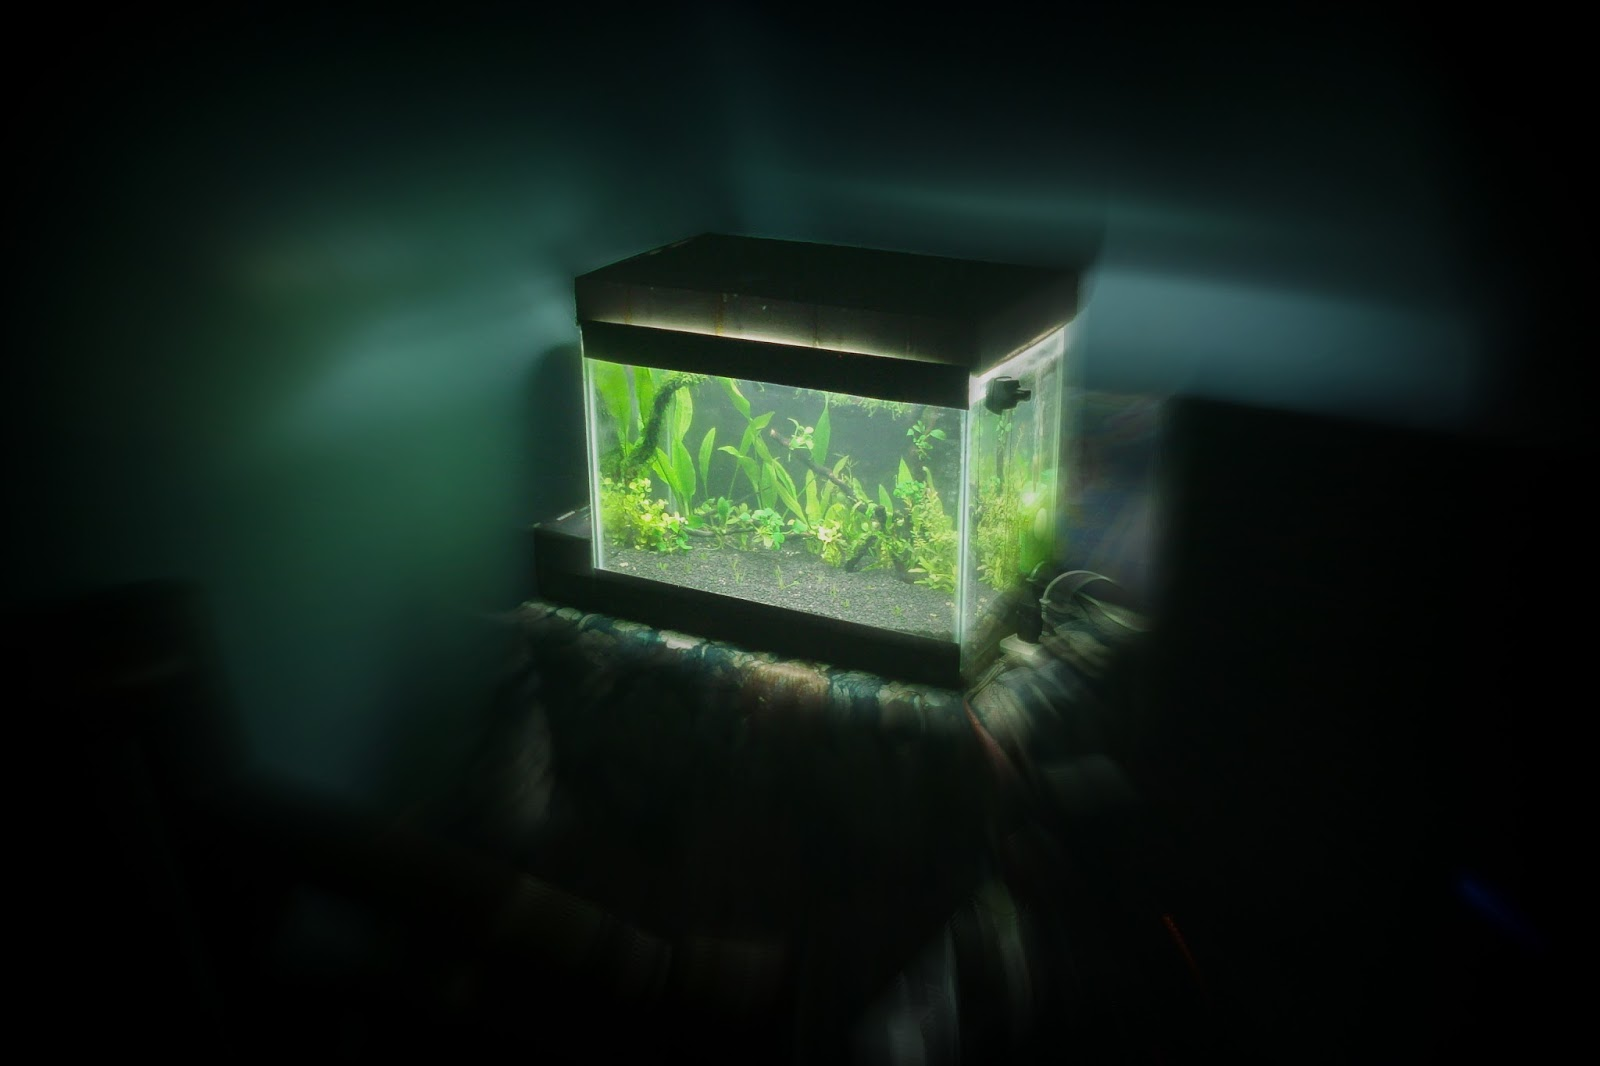 DIY - How to Make a Glass Aquarium